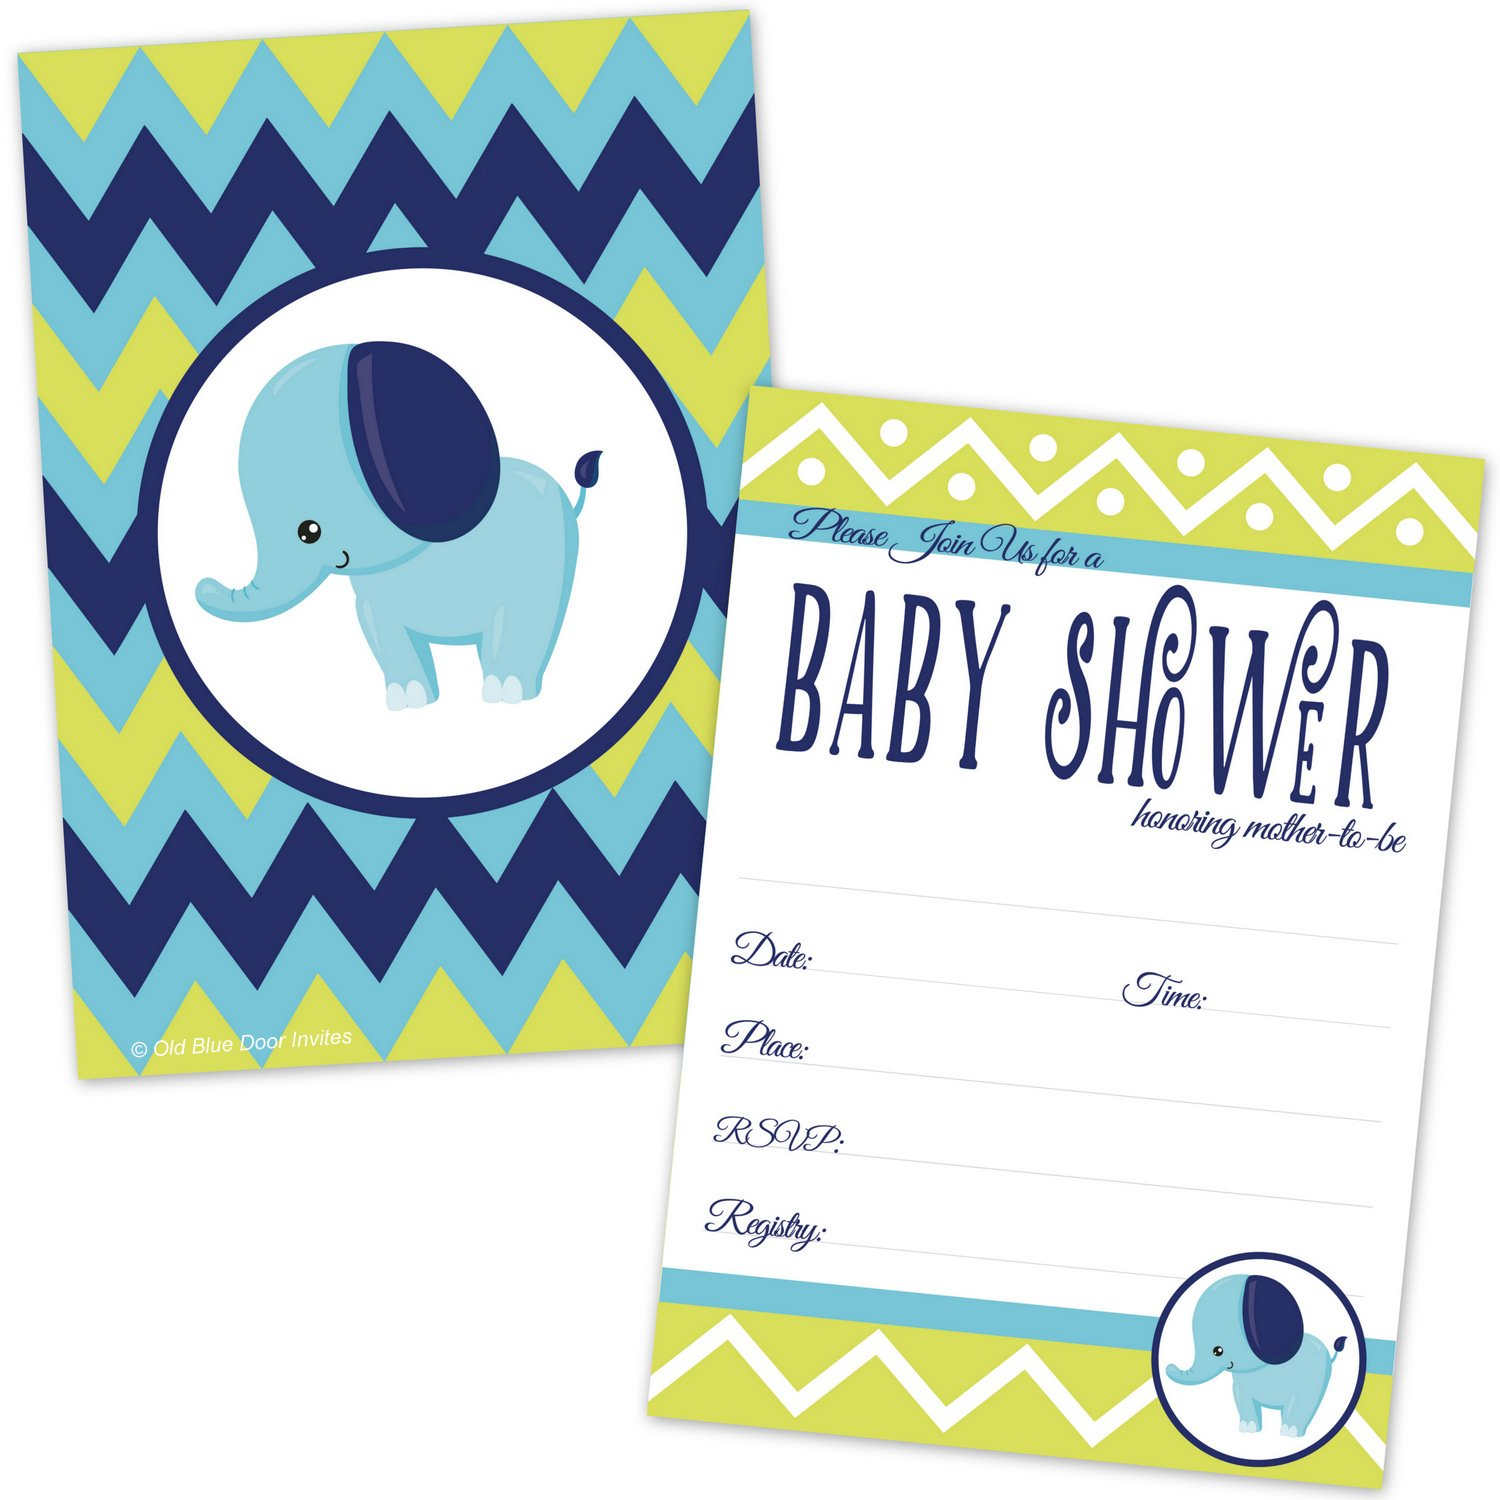 Elephant Baby Shower Invitations for Boy - Lime Green and Blue Chevron Invites - (20 Count with Envelopes) by Old Blue Door Invites (Image #1)